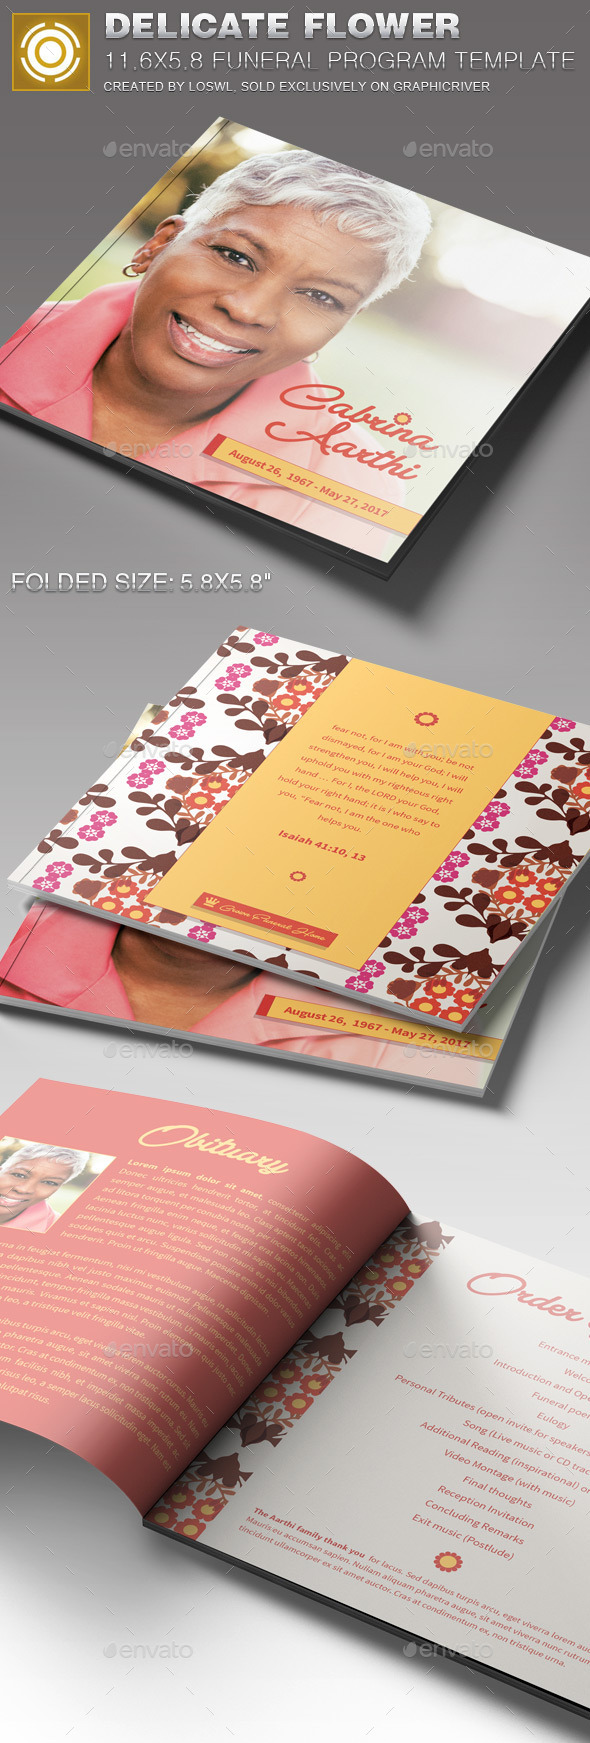 GraphicRiver Delicate Flower Funeral Program Template 11254957